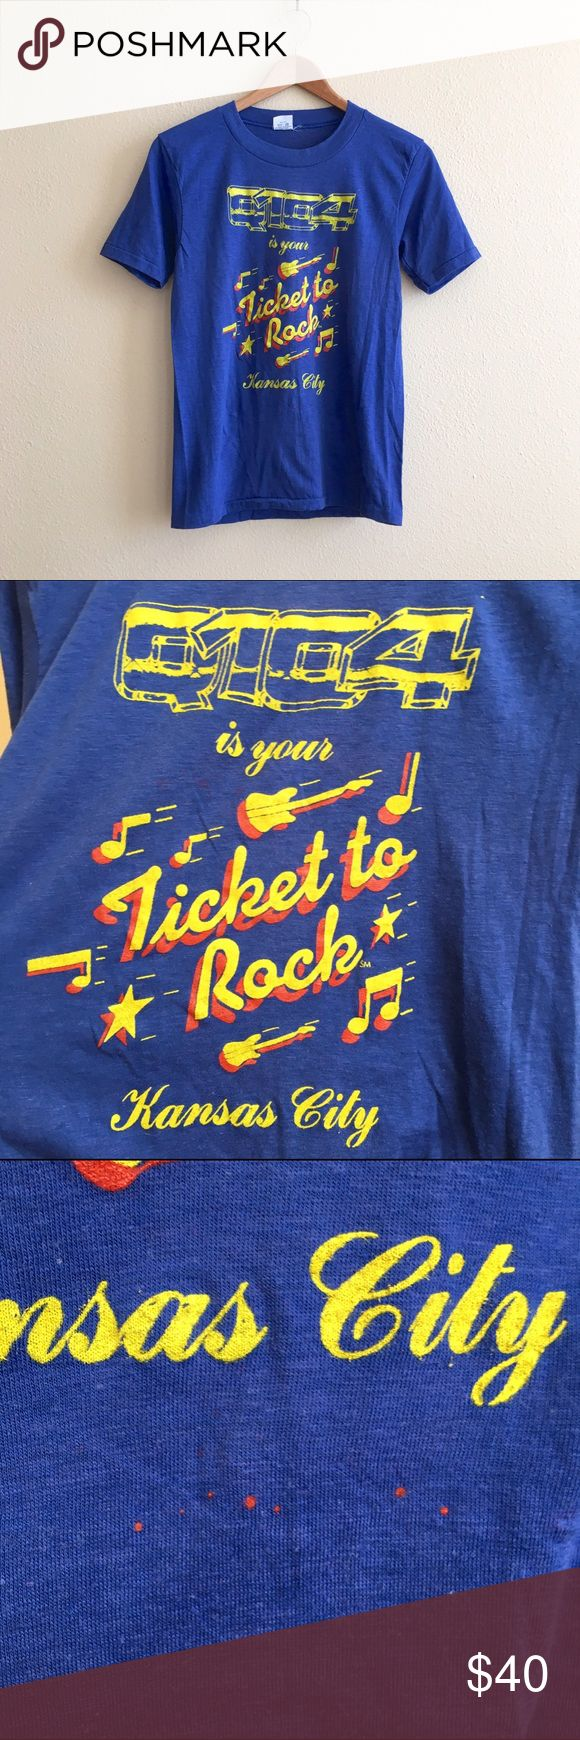 "Kansas City Paper Thin Radio Tee Paper thin royal blue tee from country radio station Q104, ""Ticket to Rock"" Kansas City. There are a few red spots shown in photos that are a result of the graphic printing a little sloppy.   BRAND: Mayo Spruce MATERIAL: 50/50 YEAR/ERA: 70s LABEL SIZE: M BEST FIT: XS/S  MEASUREMENTS: Chest 16.5 inches  Length 25 inches    I do not model or trade, sorry!  Check out my closet for more vintage! Vintage Tops Tees - Short Sleeve"